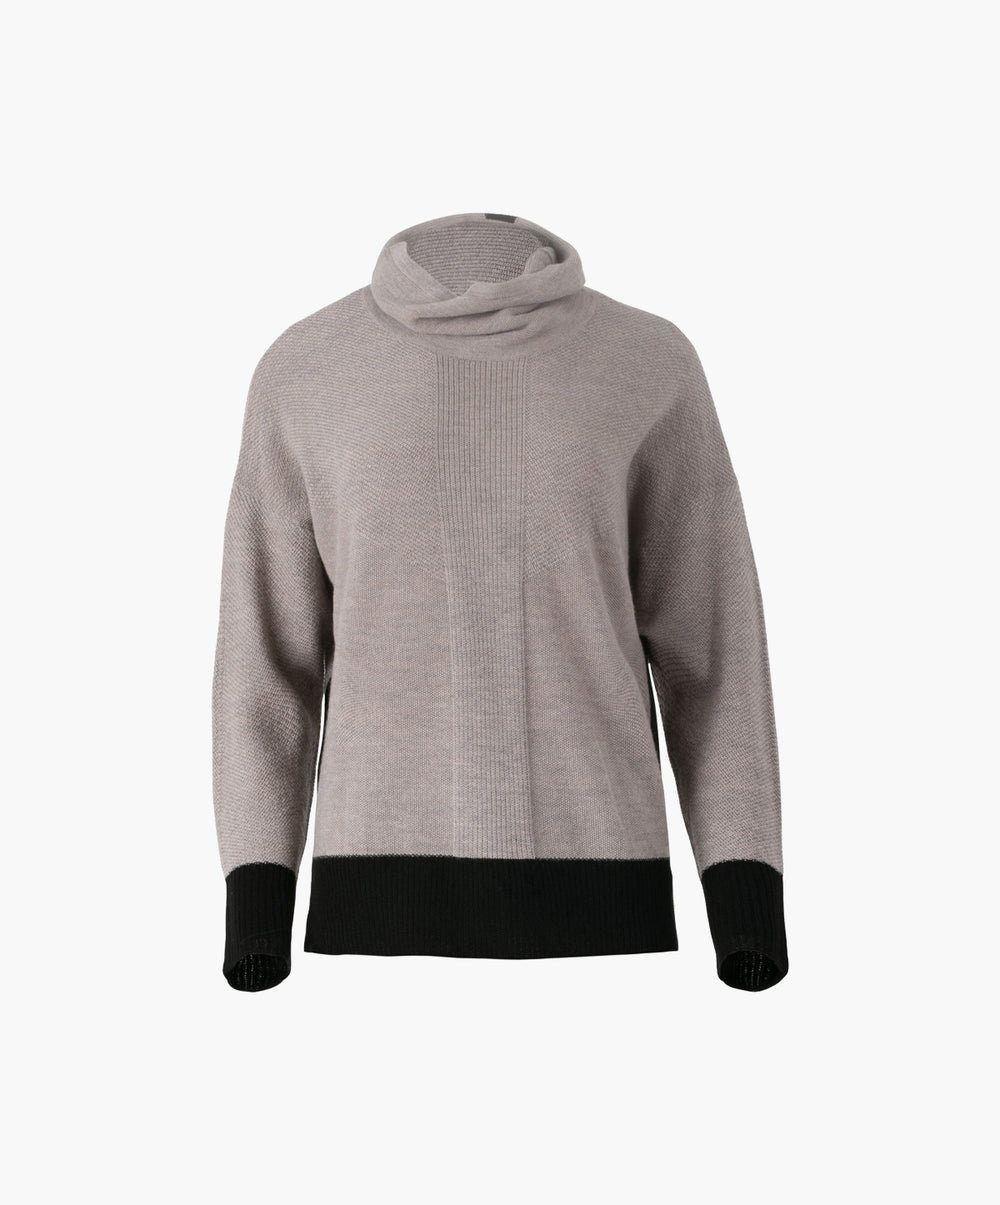 Transition Sweater